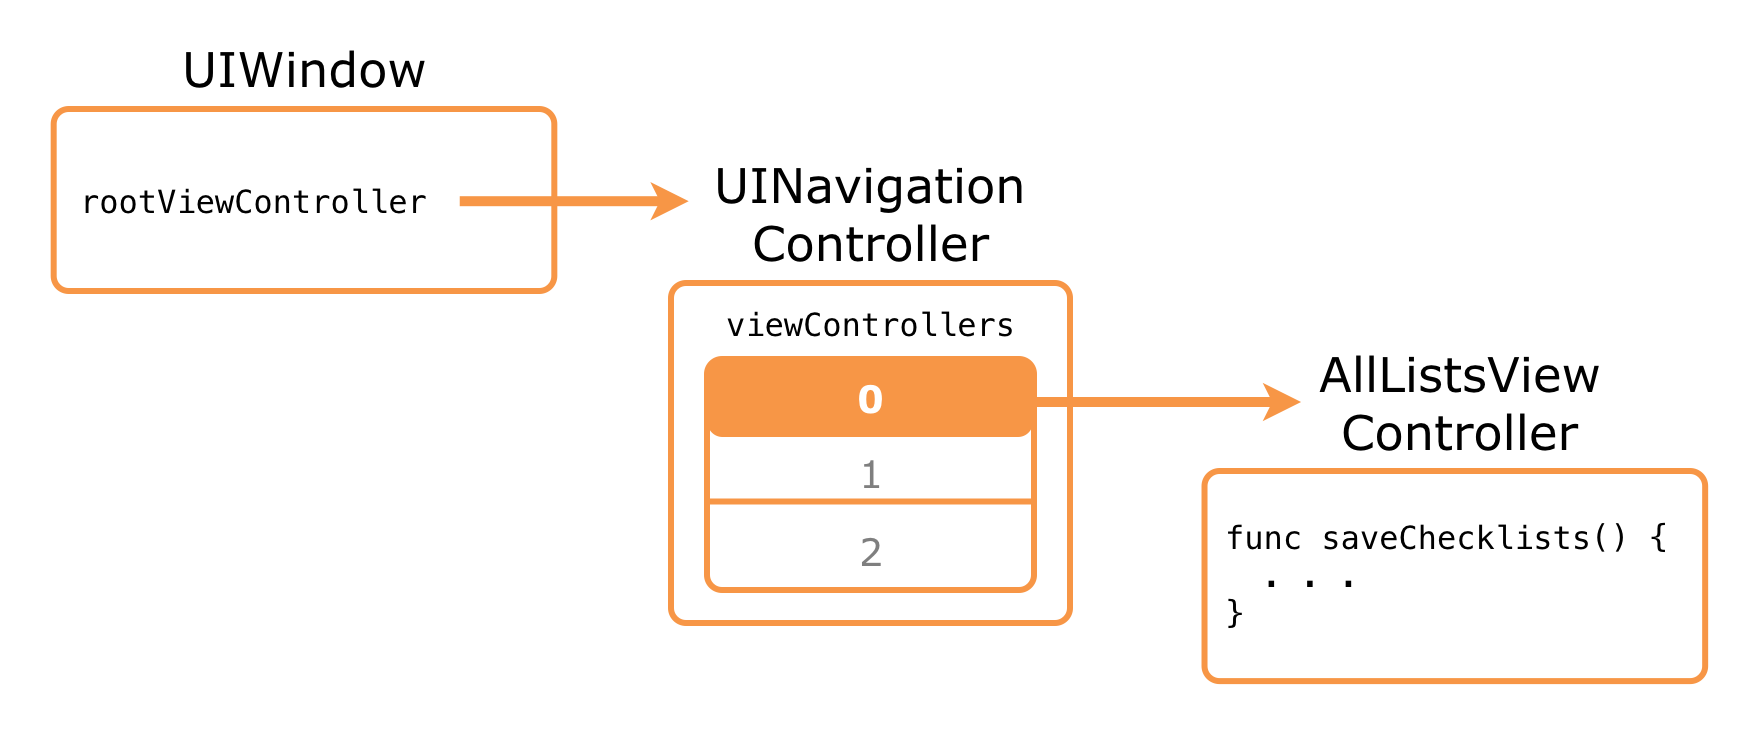 From the root view controller to the AllListsViewController